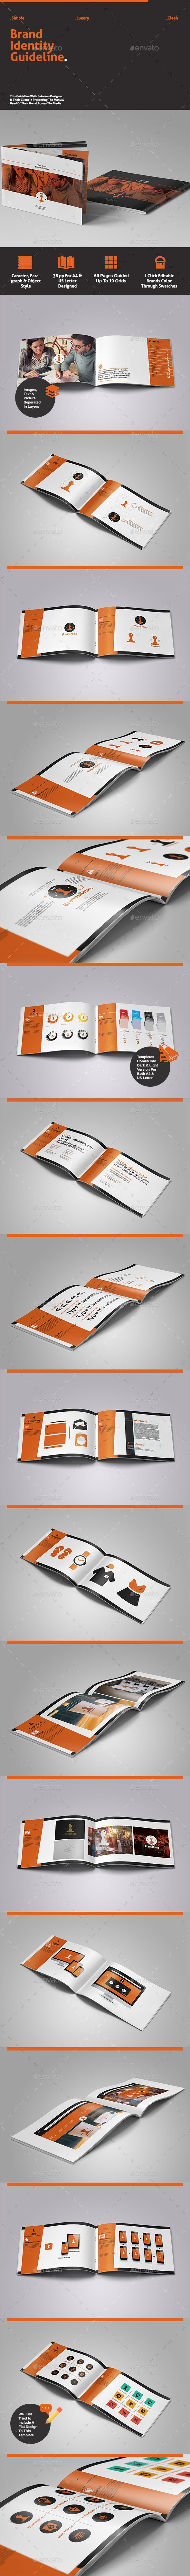 Brand Identity Guidelines - Informational Brochures